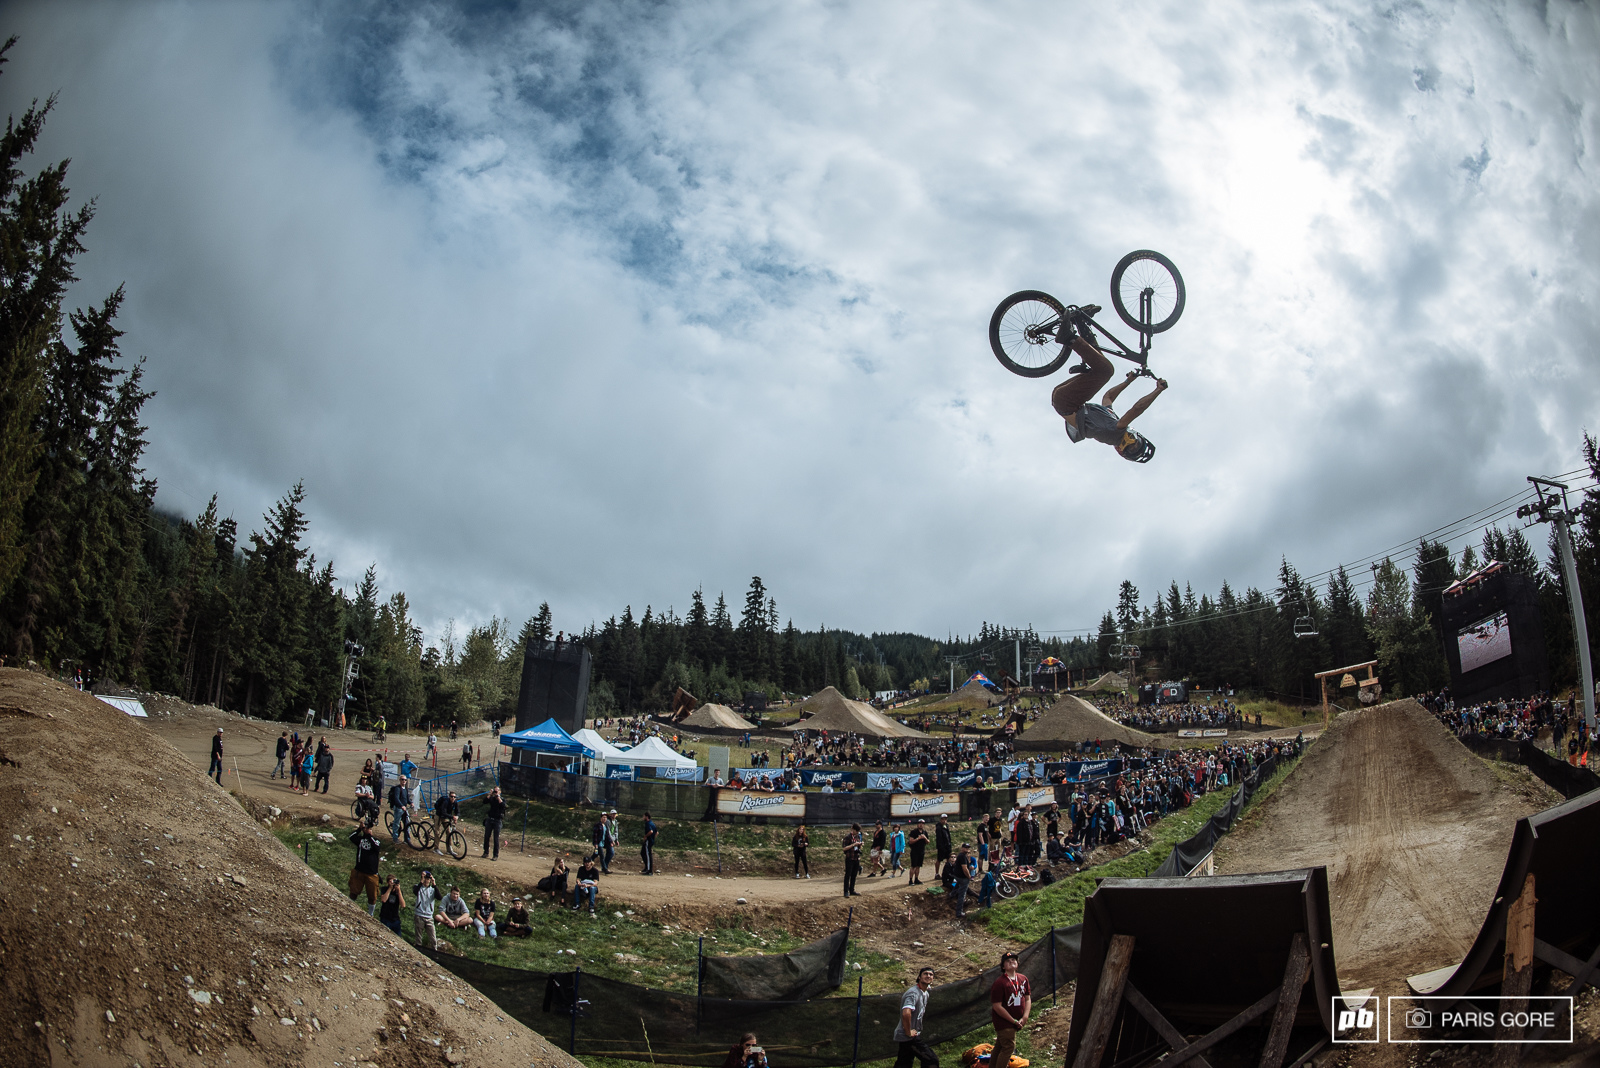 Anthony Messere getting dirt nasty.